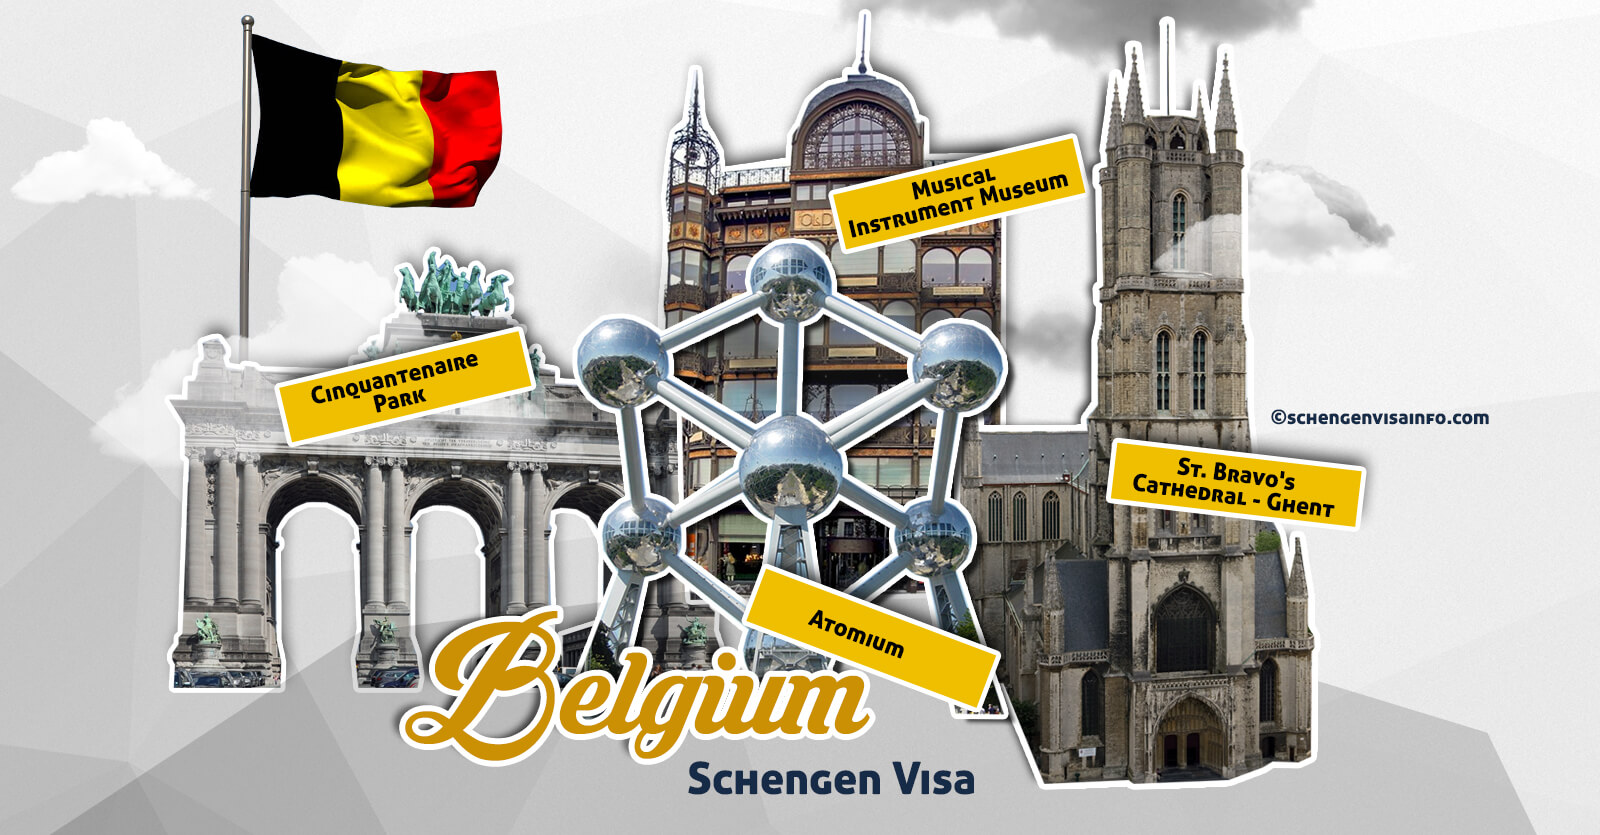 invitation letter for visapplication business sample%0A Belgium Visa Application Requirements